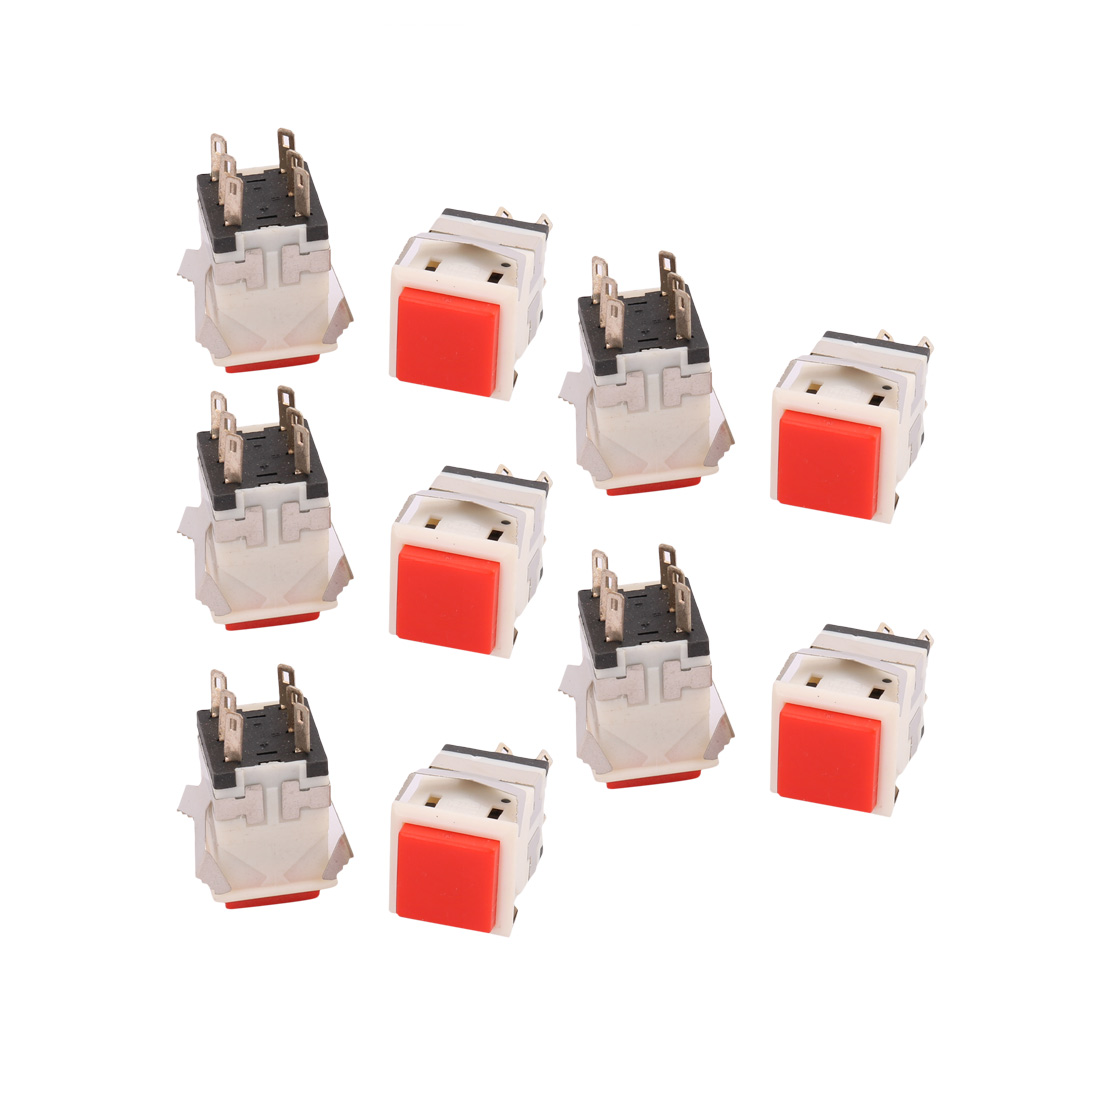 10Pcs 5A/AC250V Mini Square Push button Switch Momentary Type Red Plastic Head